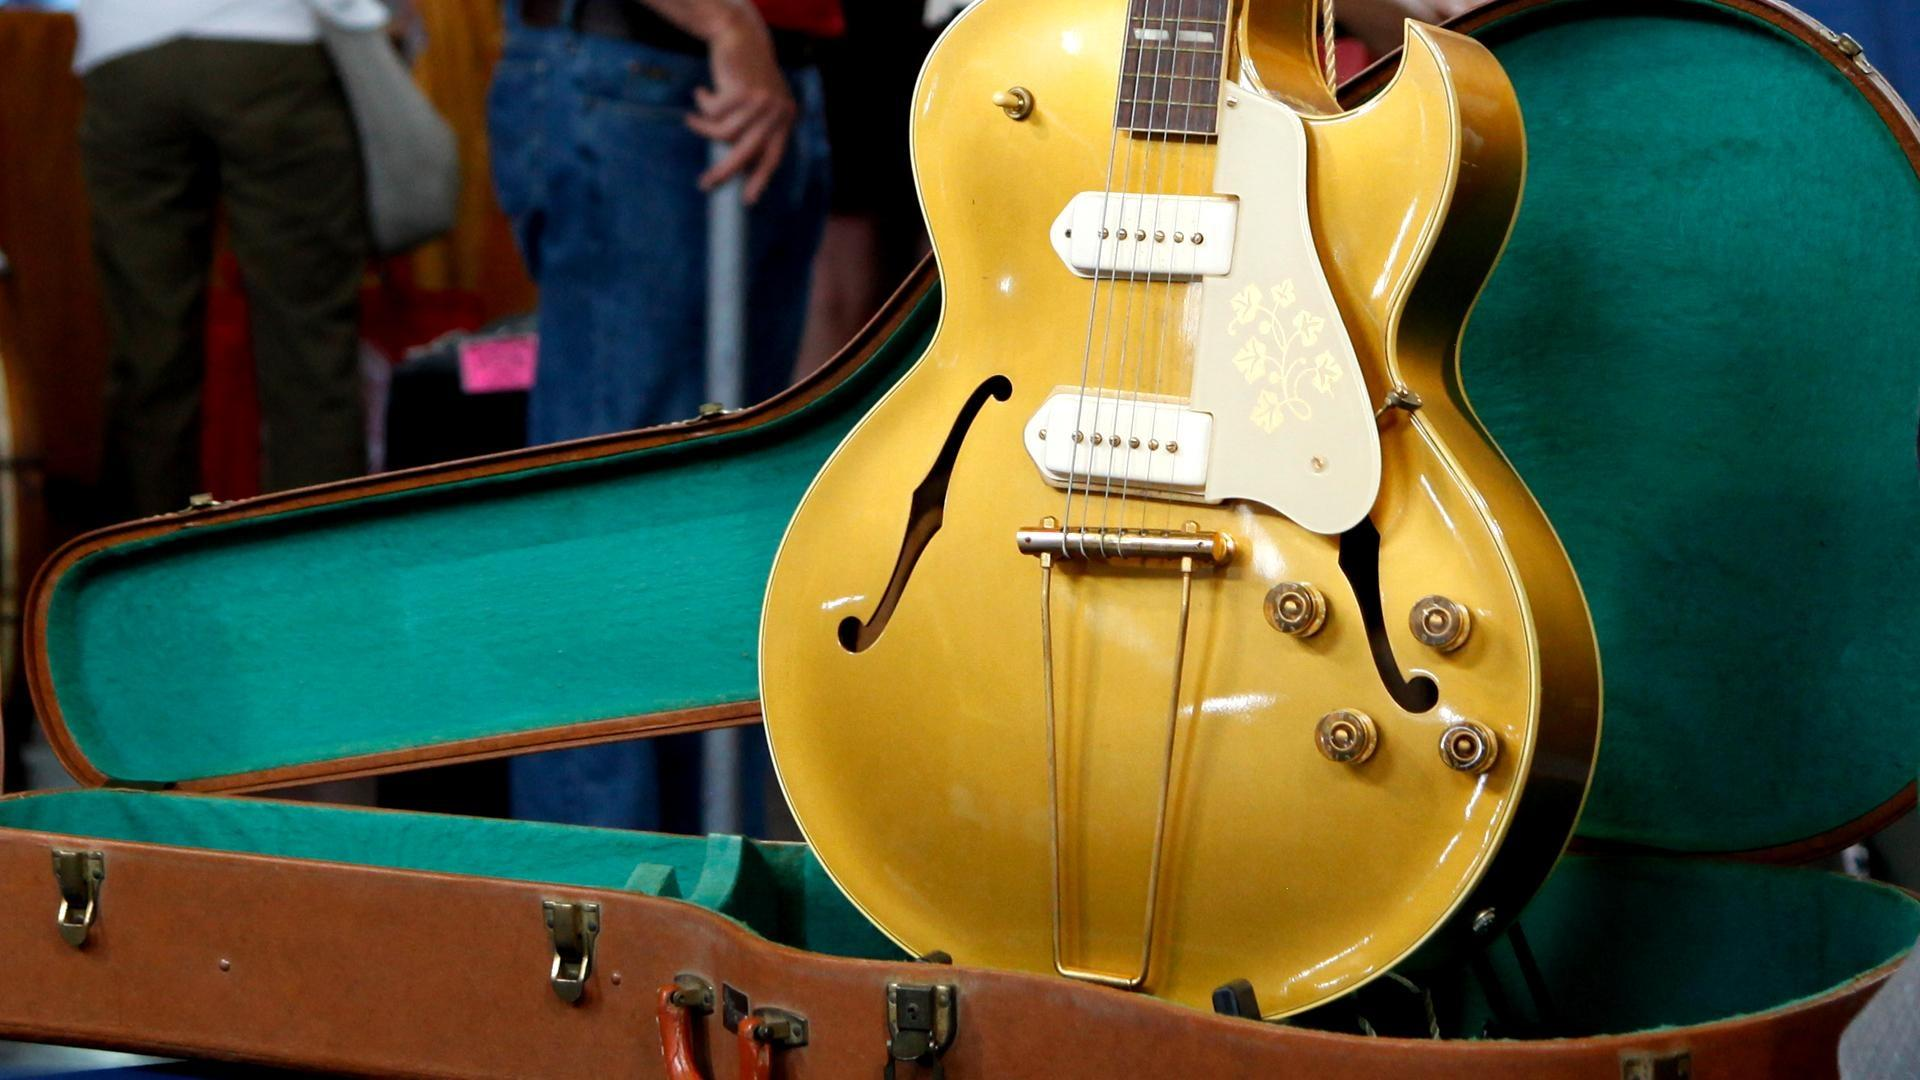 antiques roadshow appraisal 1952 gibson es 295 electric guitar twin cities pbs. Black Bedroom Furniture Sets. Home Design Ideas